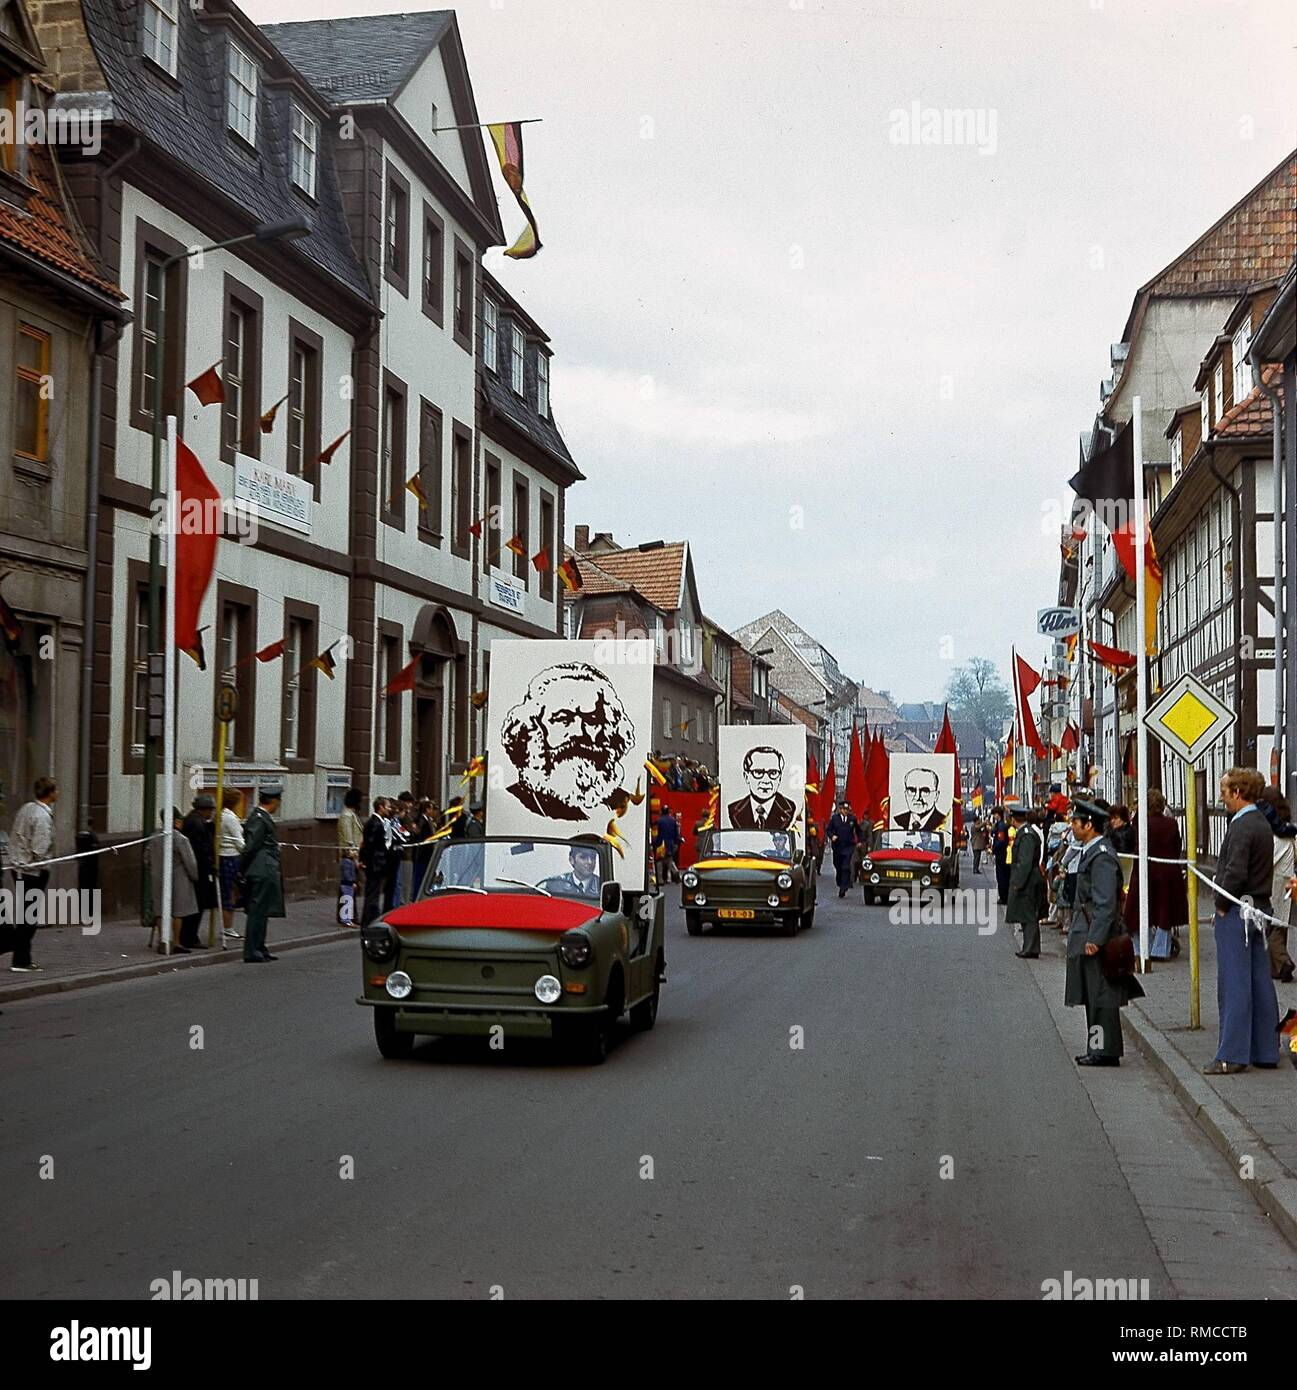 On May Day portraits of Karl Marx and SED officials are driven through the streets of Heiligenstadt on Trabant convertibles. - Stock Image